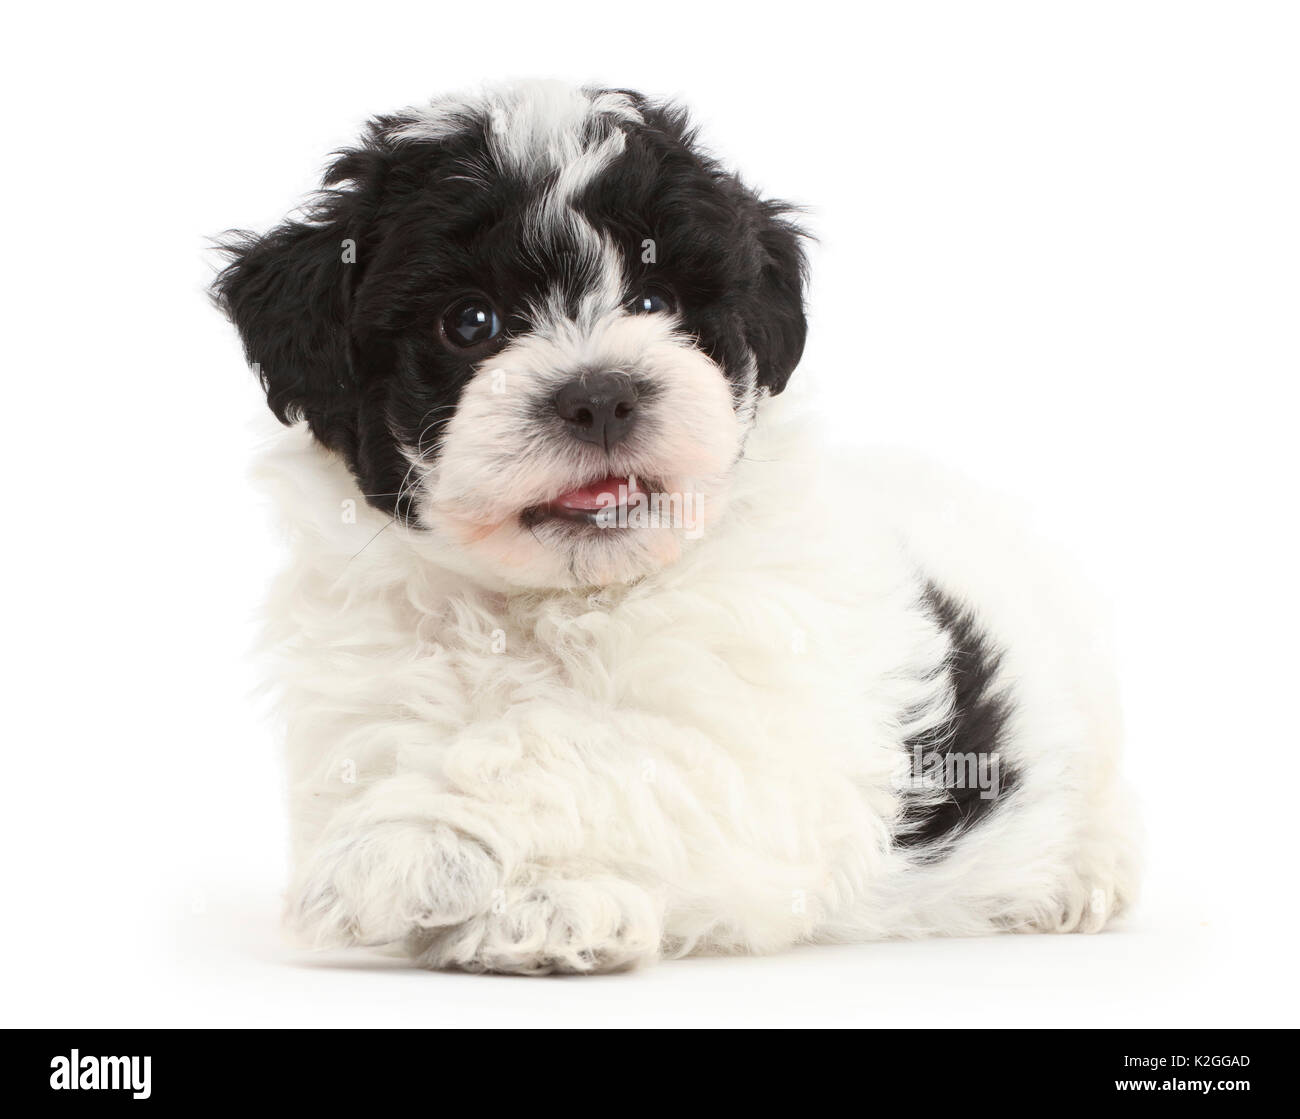 Black And White Cavapoo Puppy High Resolution Stock Photography And Images Alamy